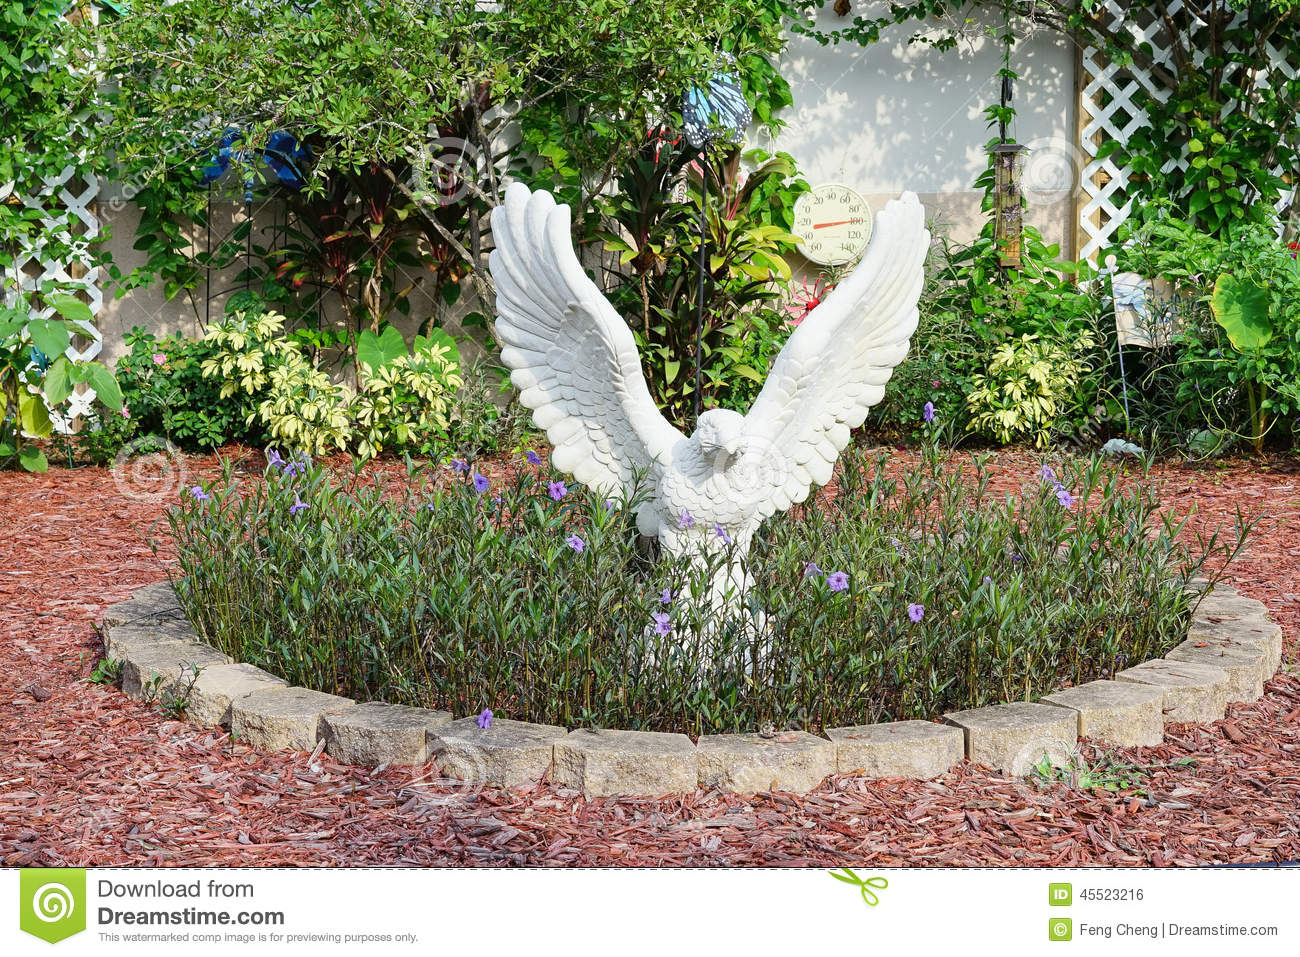 Great A Beautiful School Garden And A White Statue Of Eagle